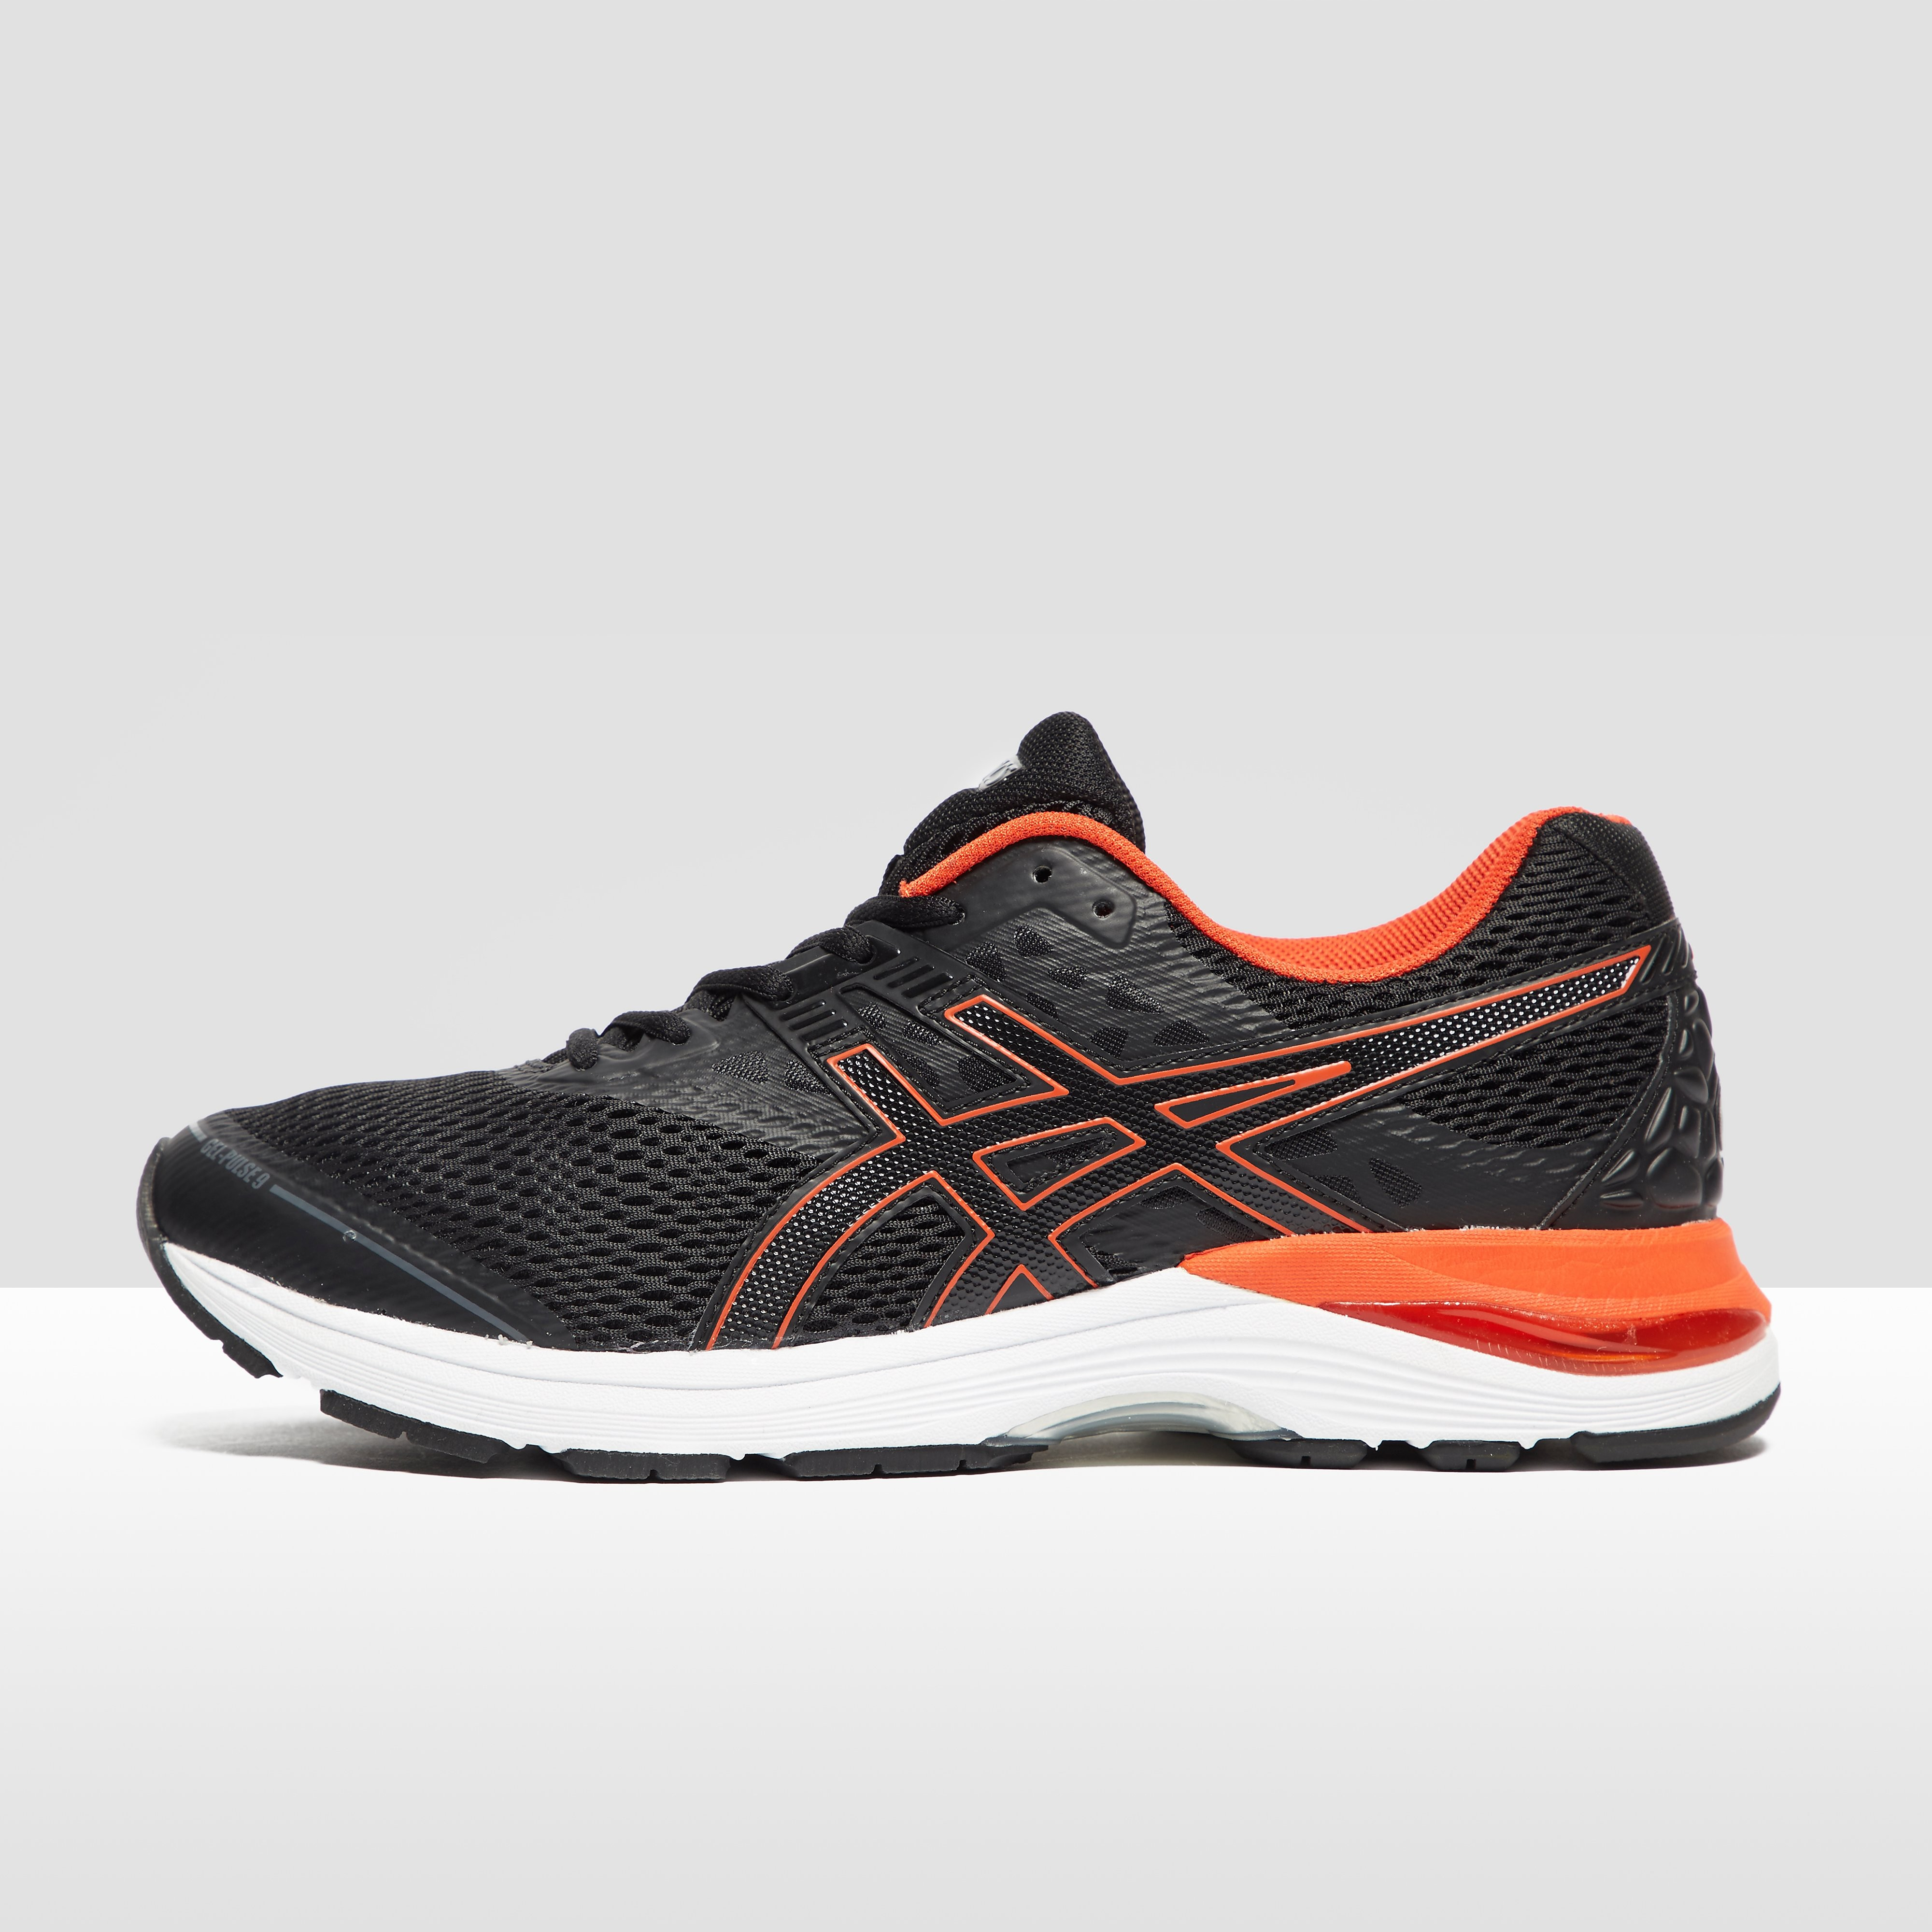 ASICS GEL-PULSE 9 Men's Running Shoes